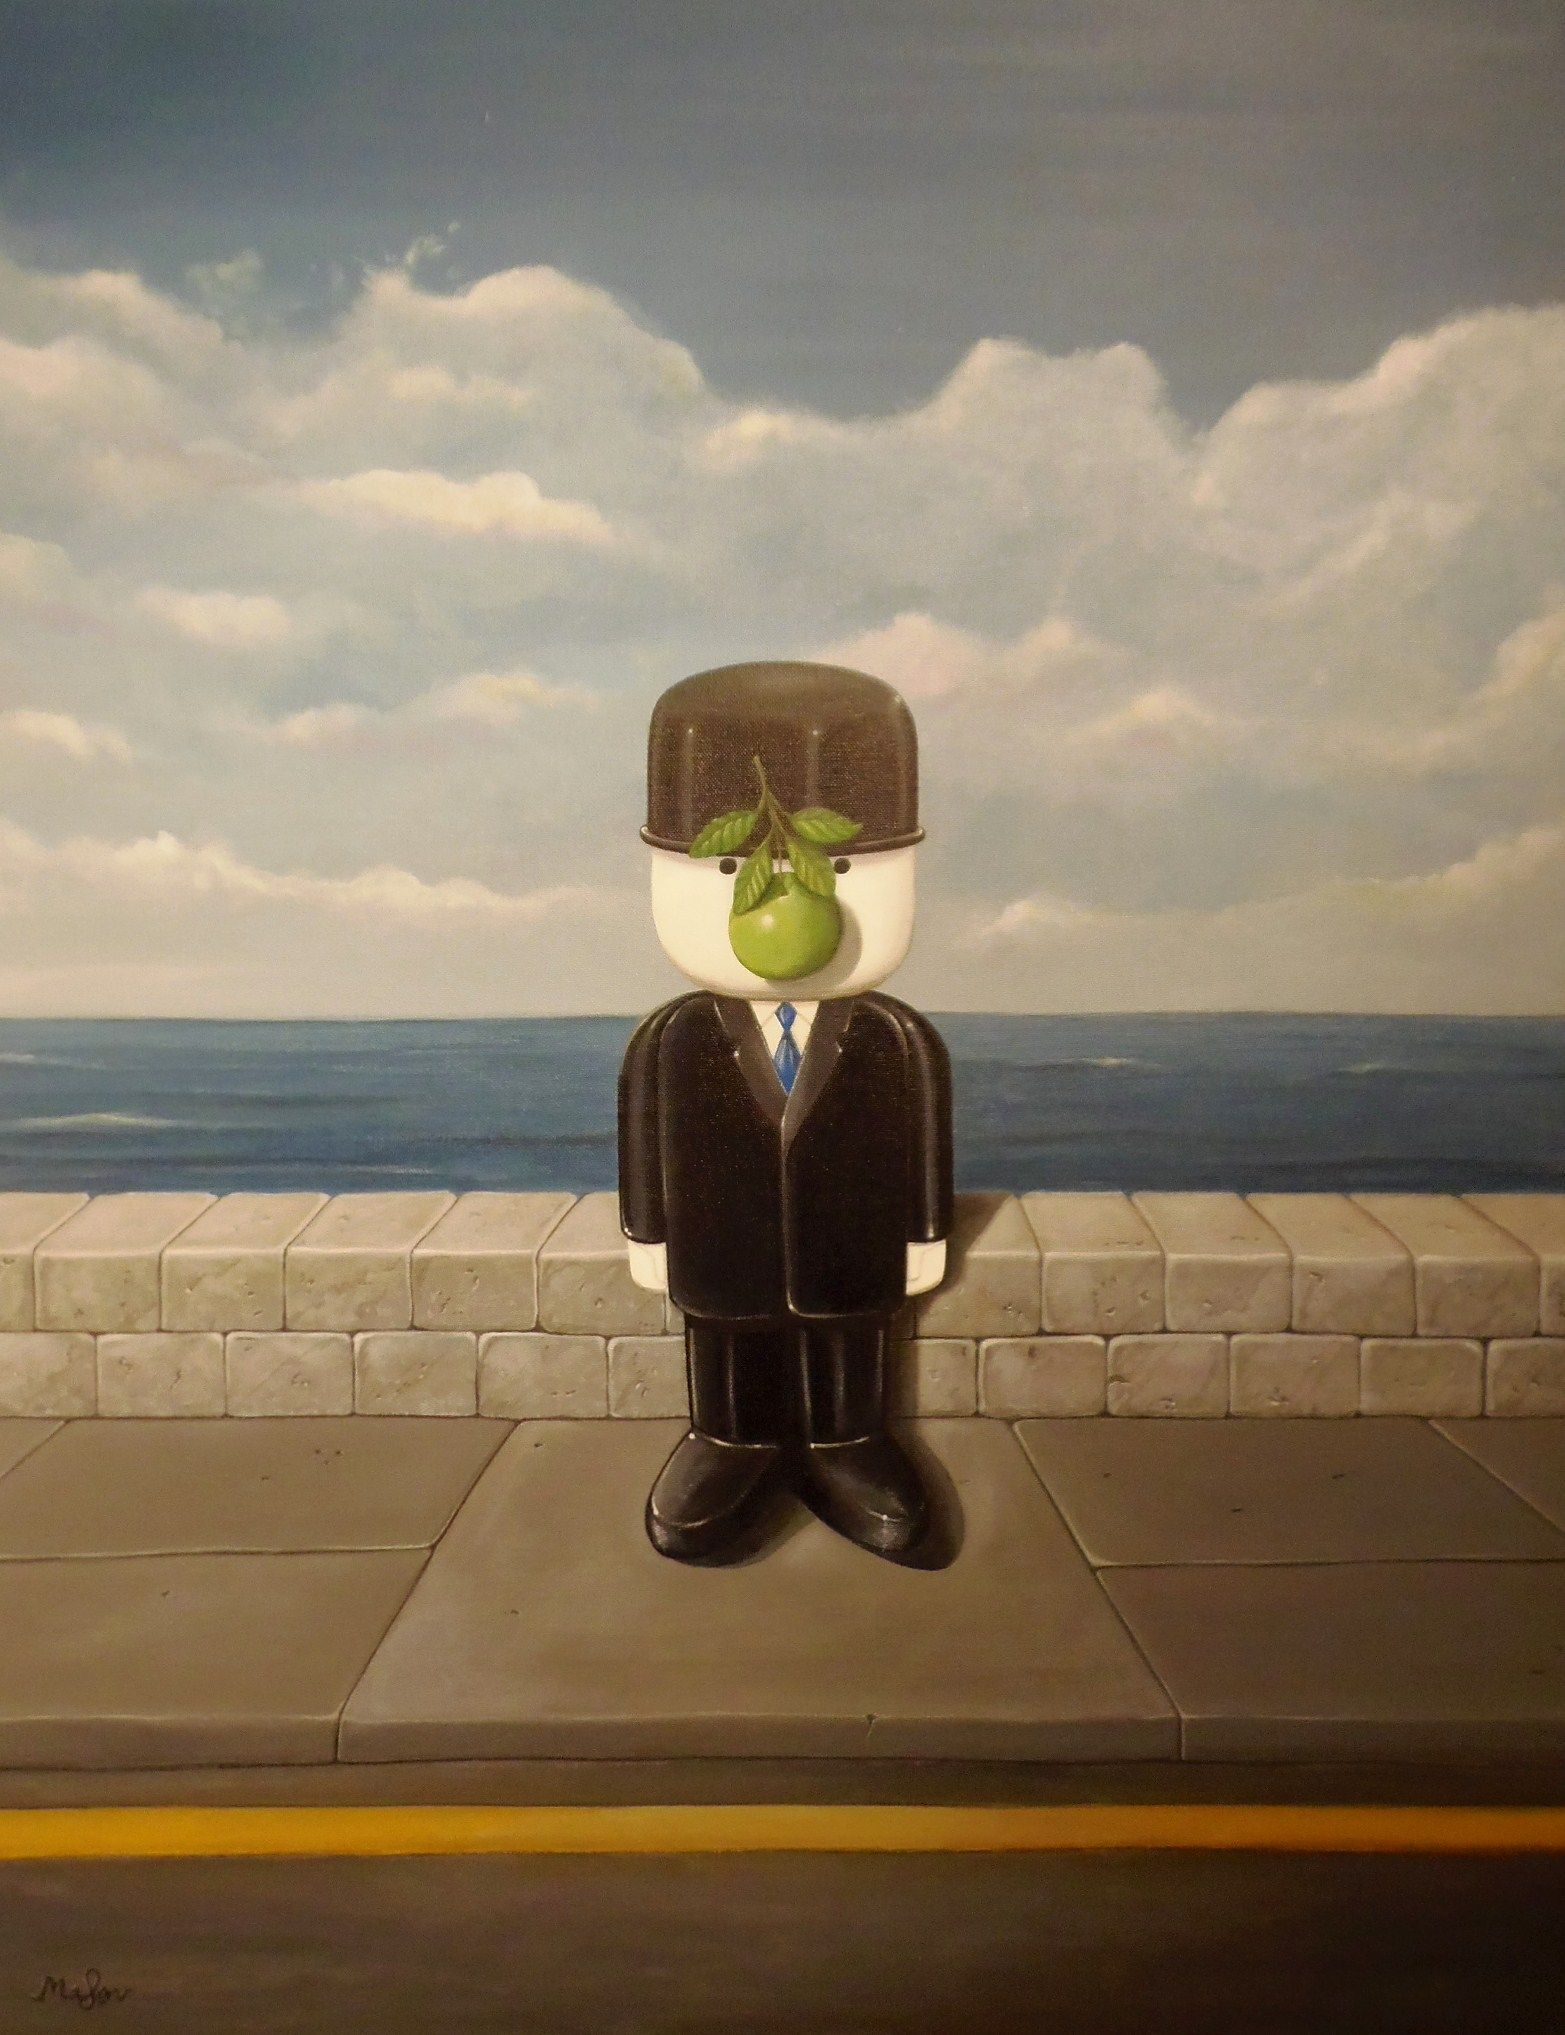 Acrylic on canvas featuring Fred as part of the Fred/Magritte series of paintings. In Magritte's 'Son of Man' painting a business man (a portrait of Magritte himself) has his face obscured by a green apple. Here we see Fred in the same pose except we can see below the waist of the central character.